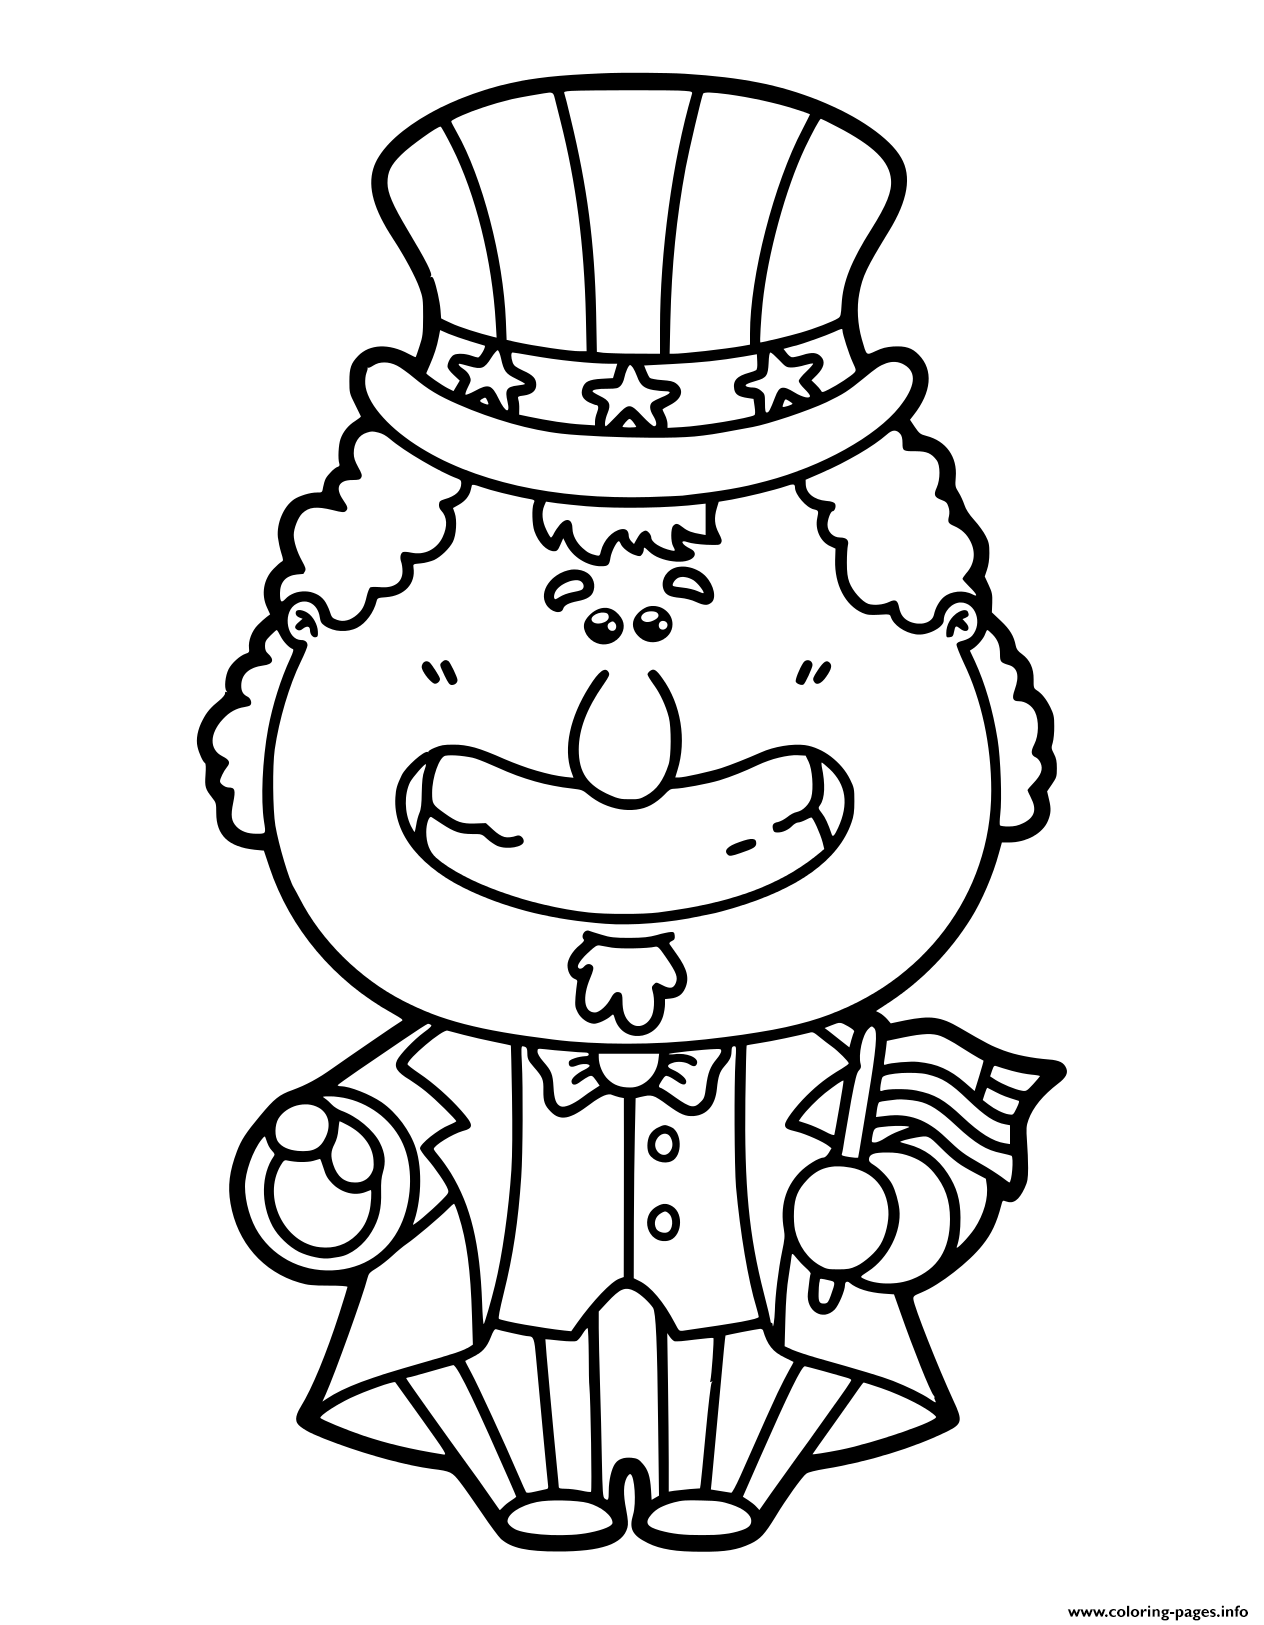 Funny Uncle Sam Cartoon Which Is Holding America Coloring